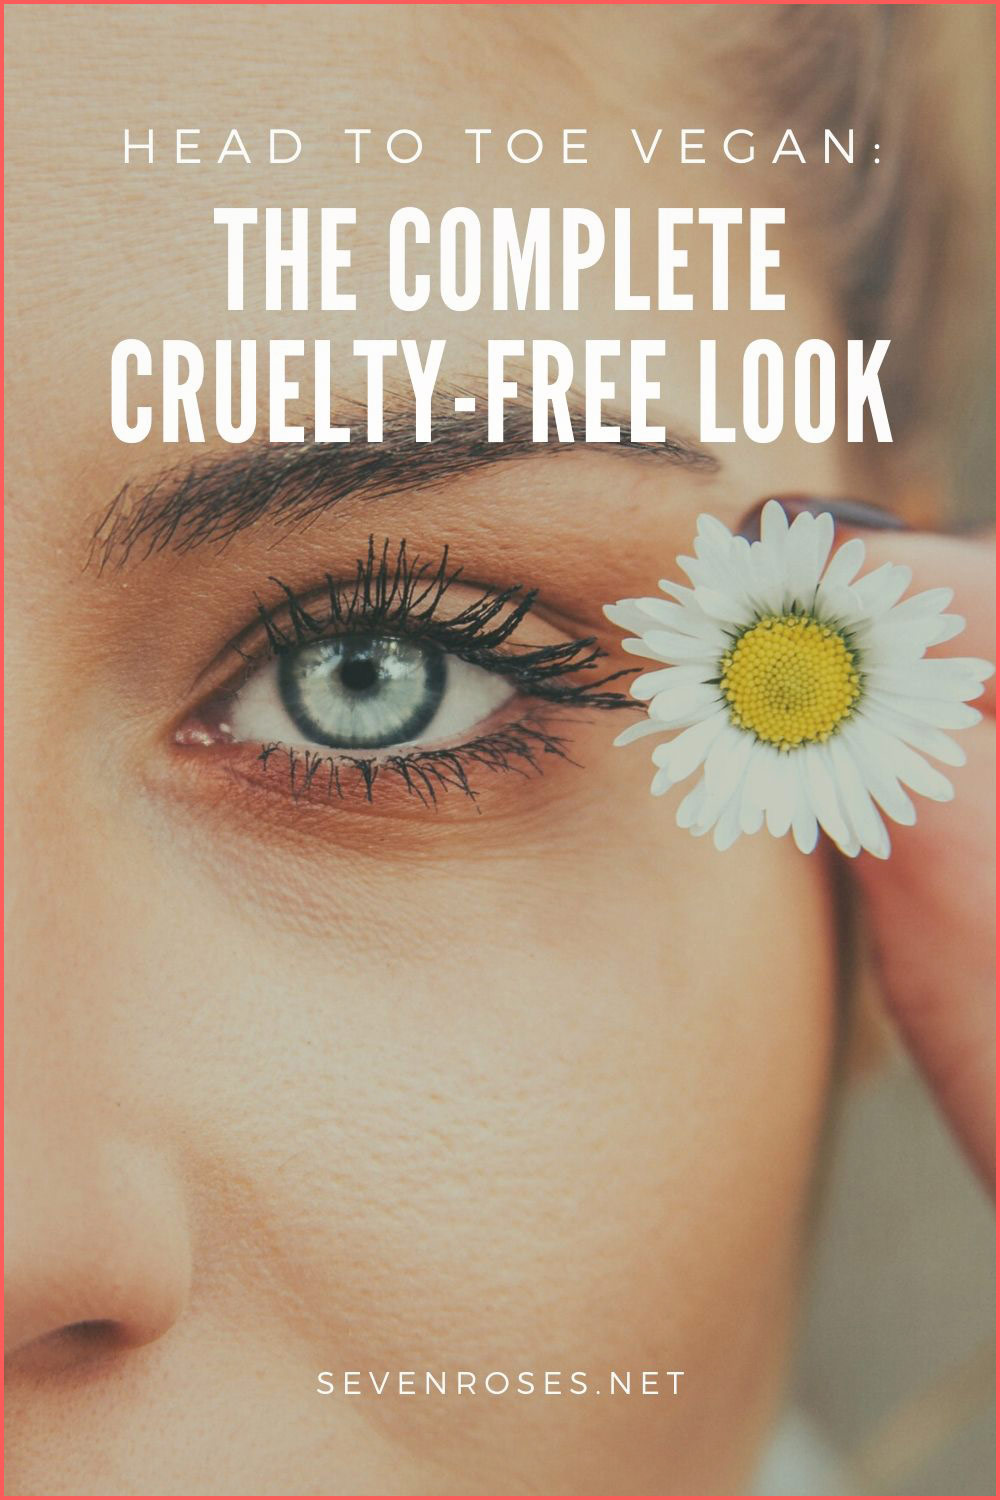 Head to Toe Vegan: How to Get the Complete Cruelty-Free Look